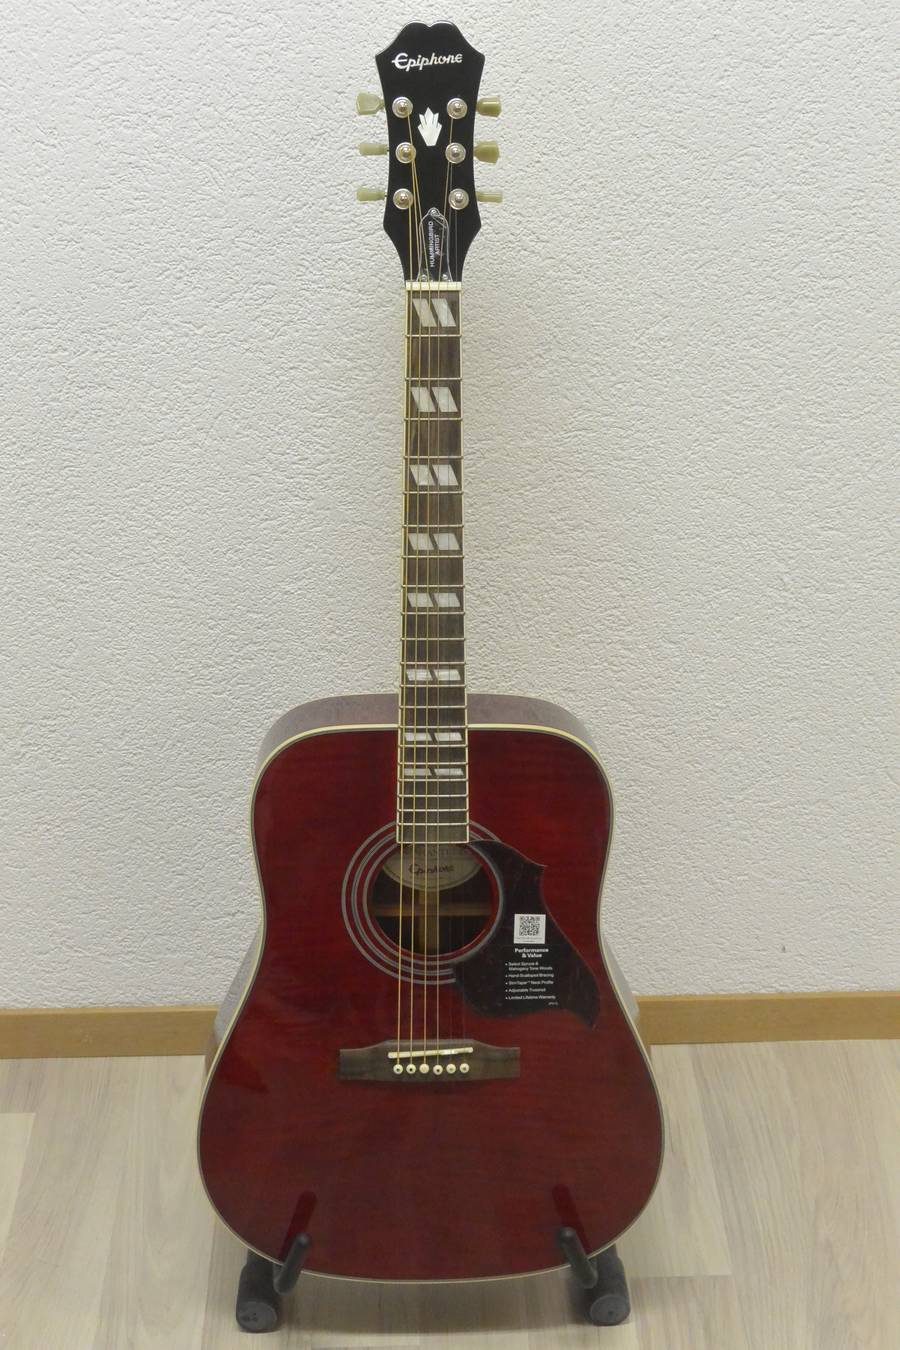 guitare acoustique epiphone Hummingird frs 430.00